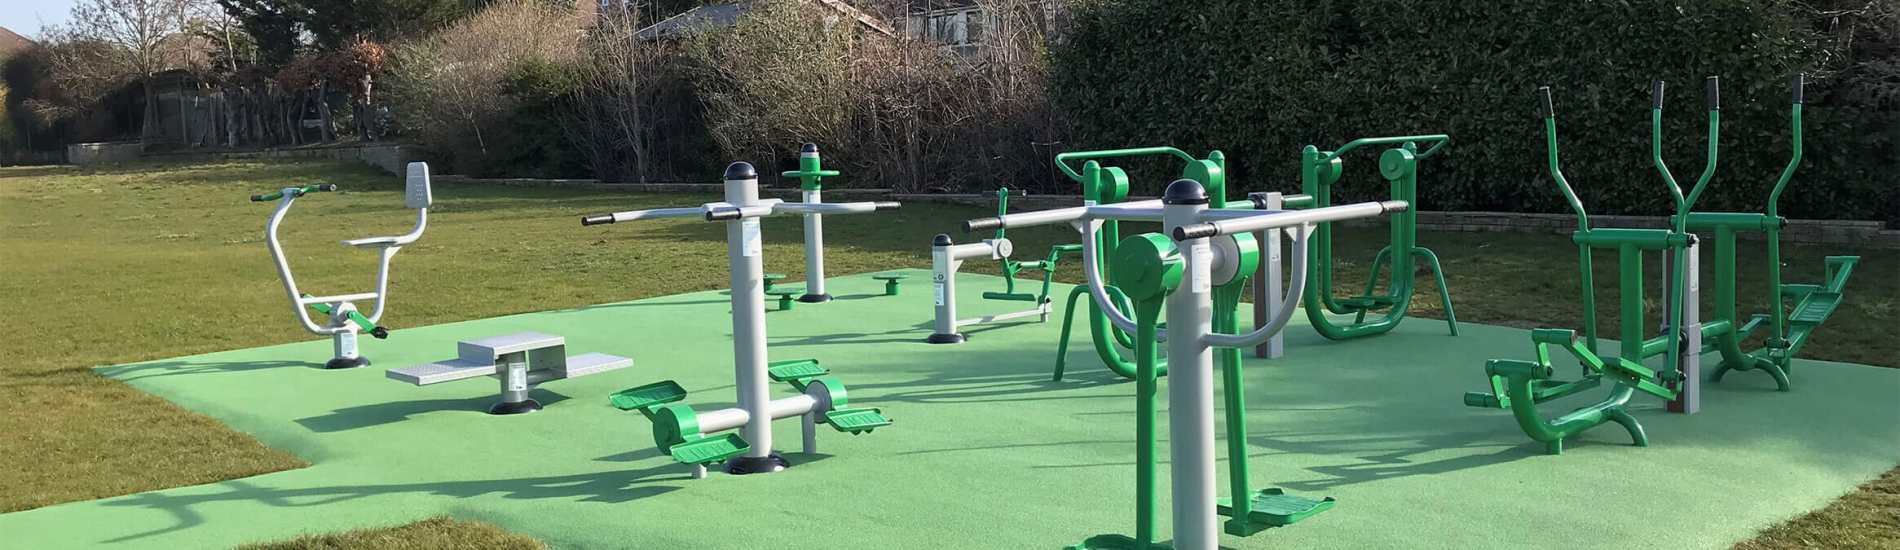 Outdoor Gym Equipment Leading Uk Supplier Certified To